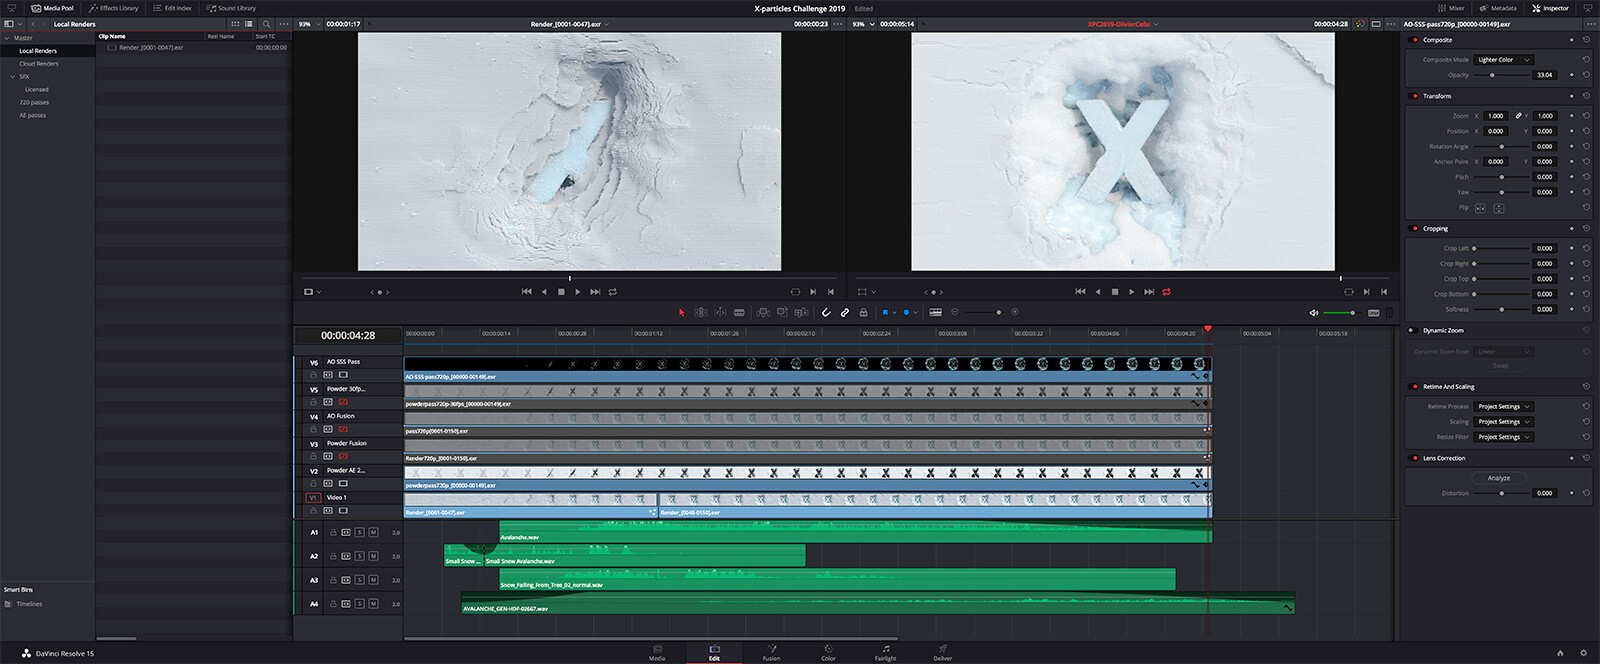 Editing in Resolve. I layered 4 different sound effects to give depth to the shot.